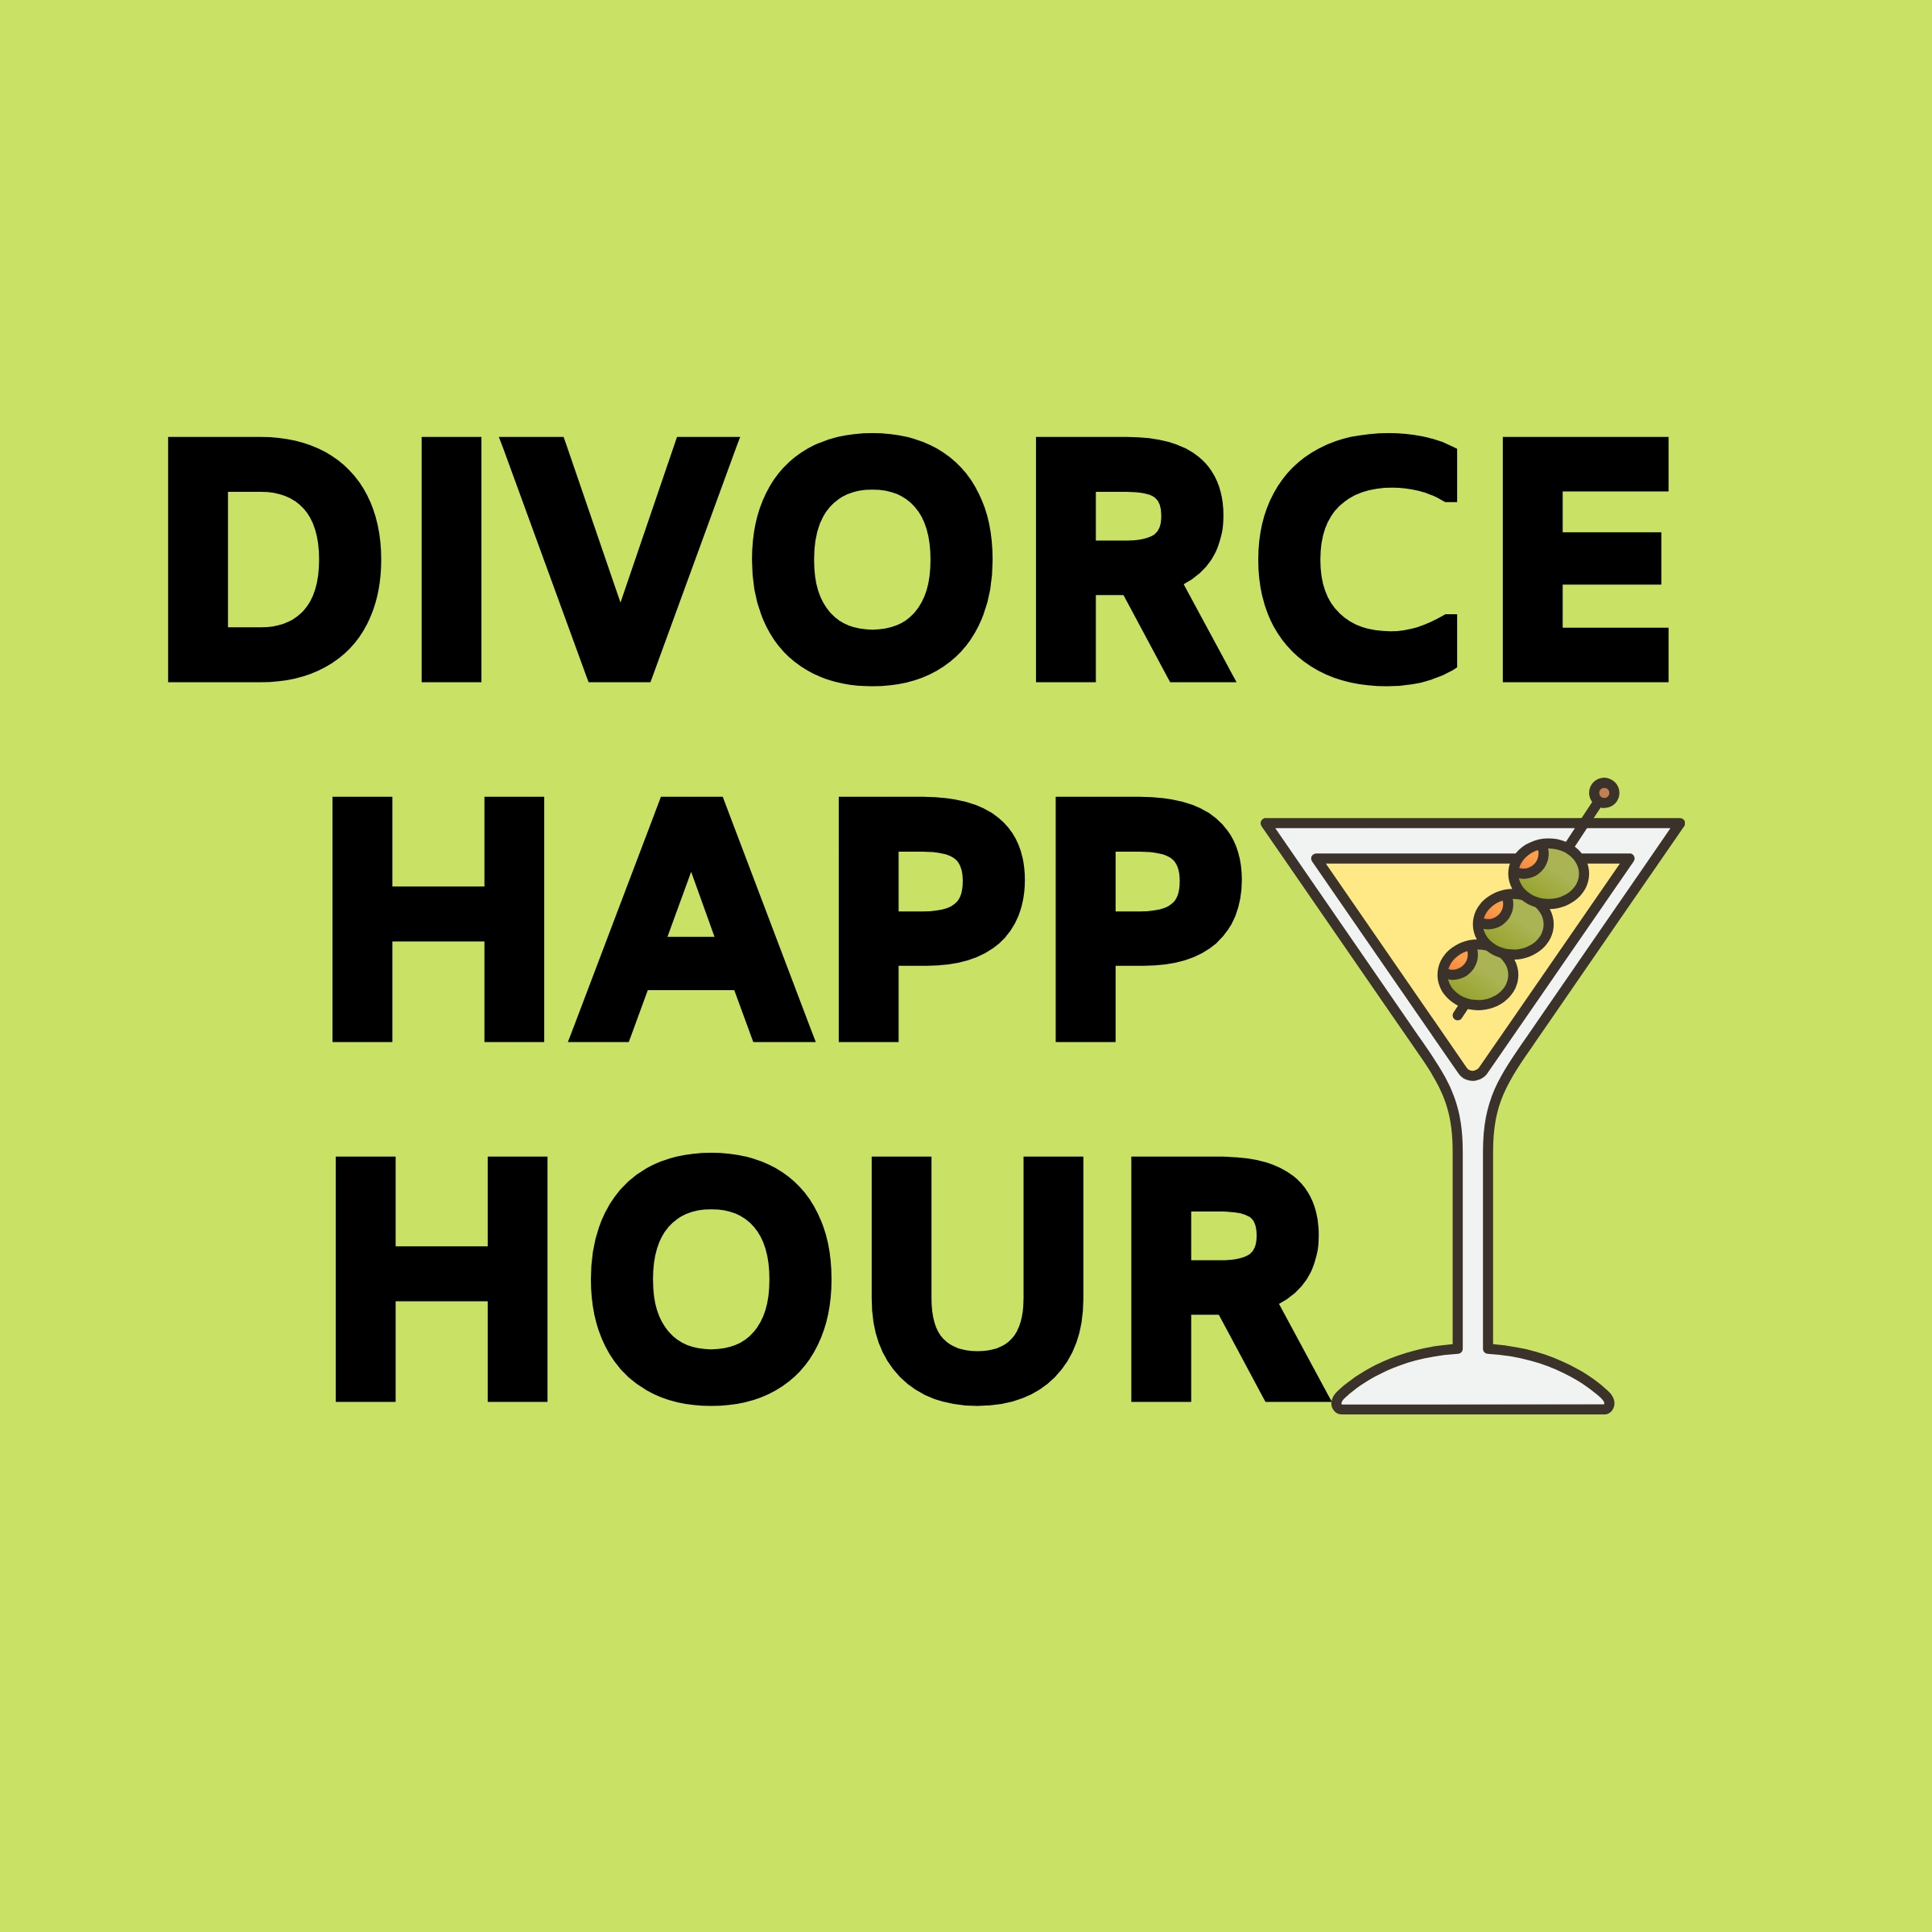 DIVORCE HAPPY HOUR